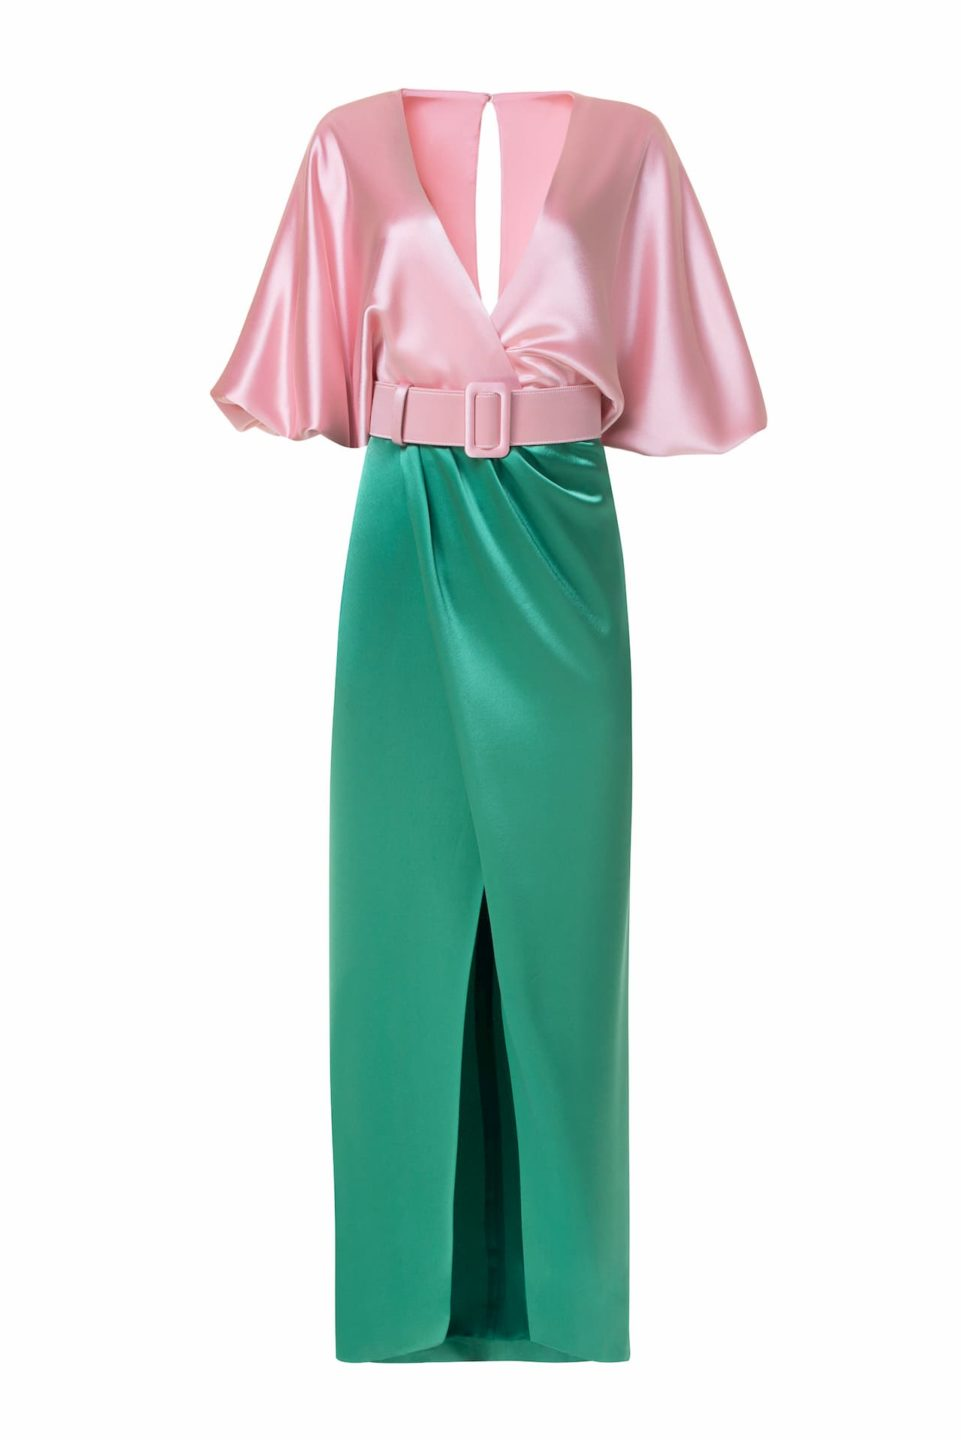 Lulie PS2139 Satin Colorblock Wrap-Front Dress with Surplice Bust